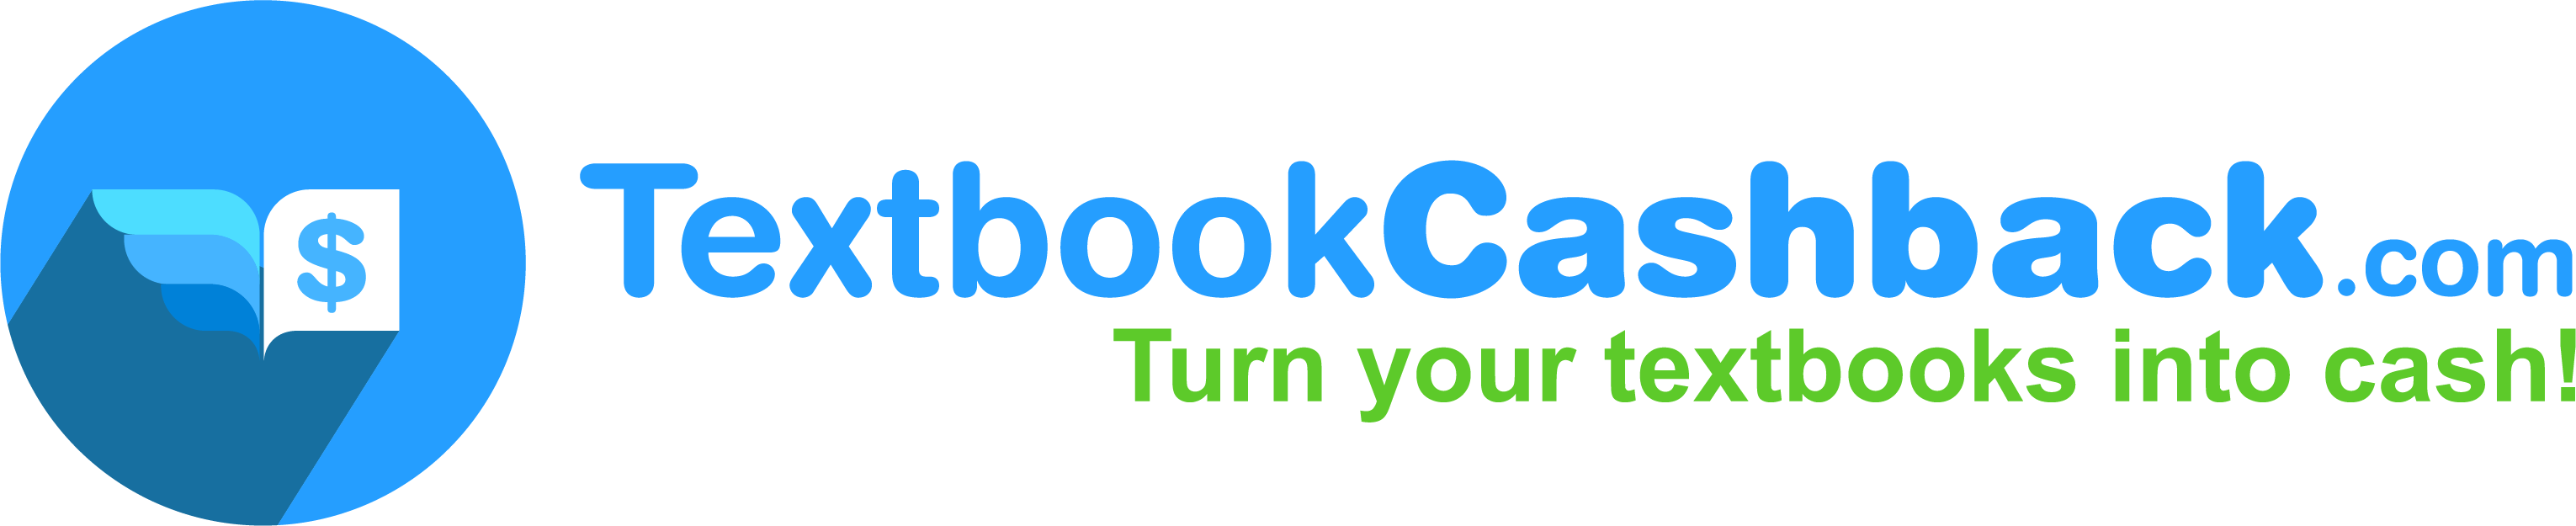 TextbookCashback.com LLC - Affiliate Program